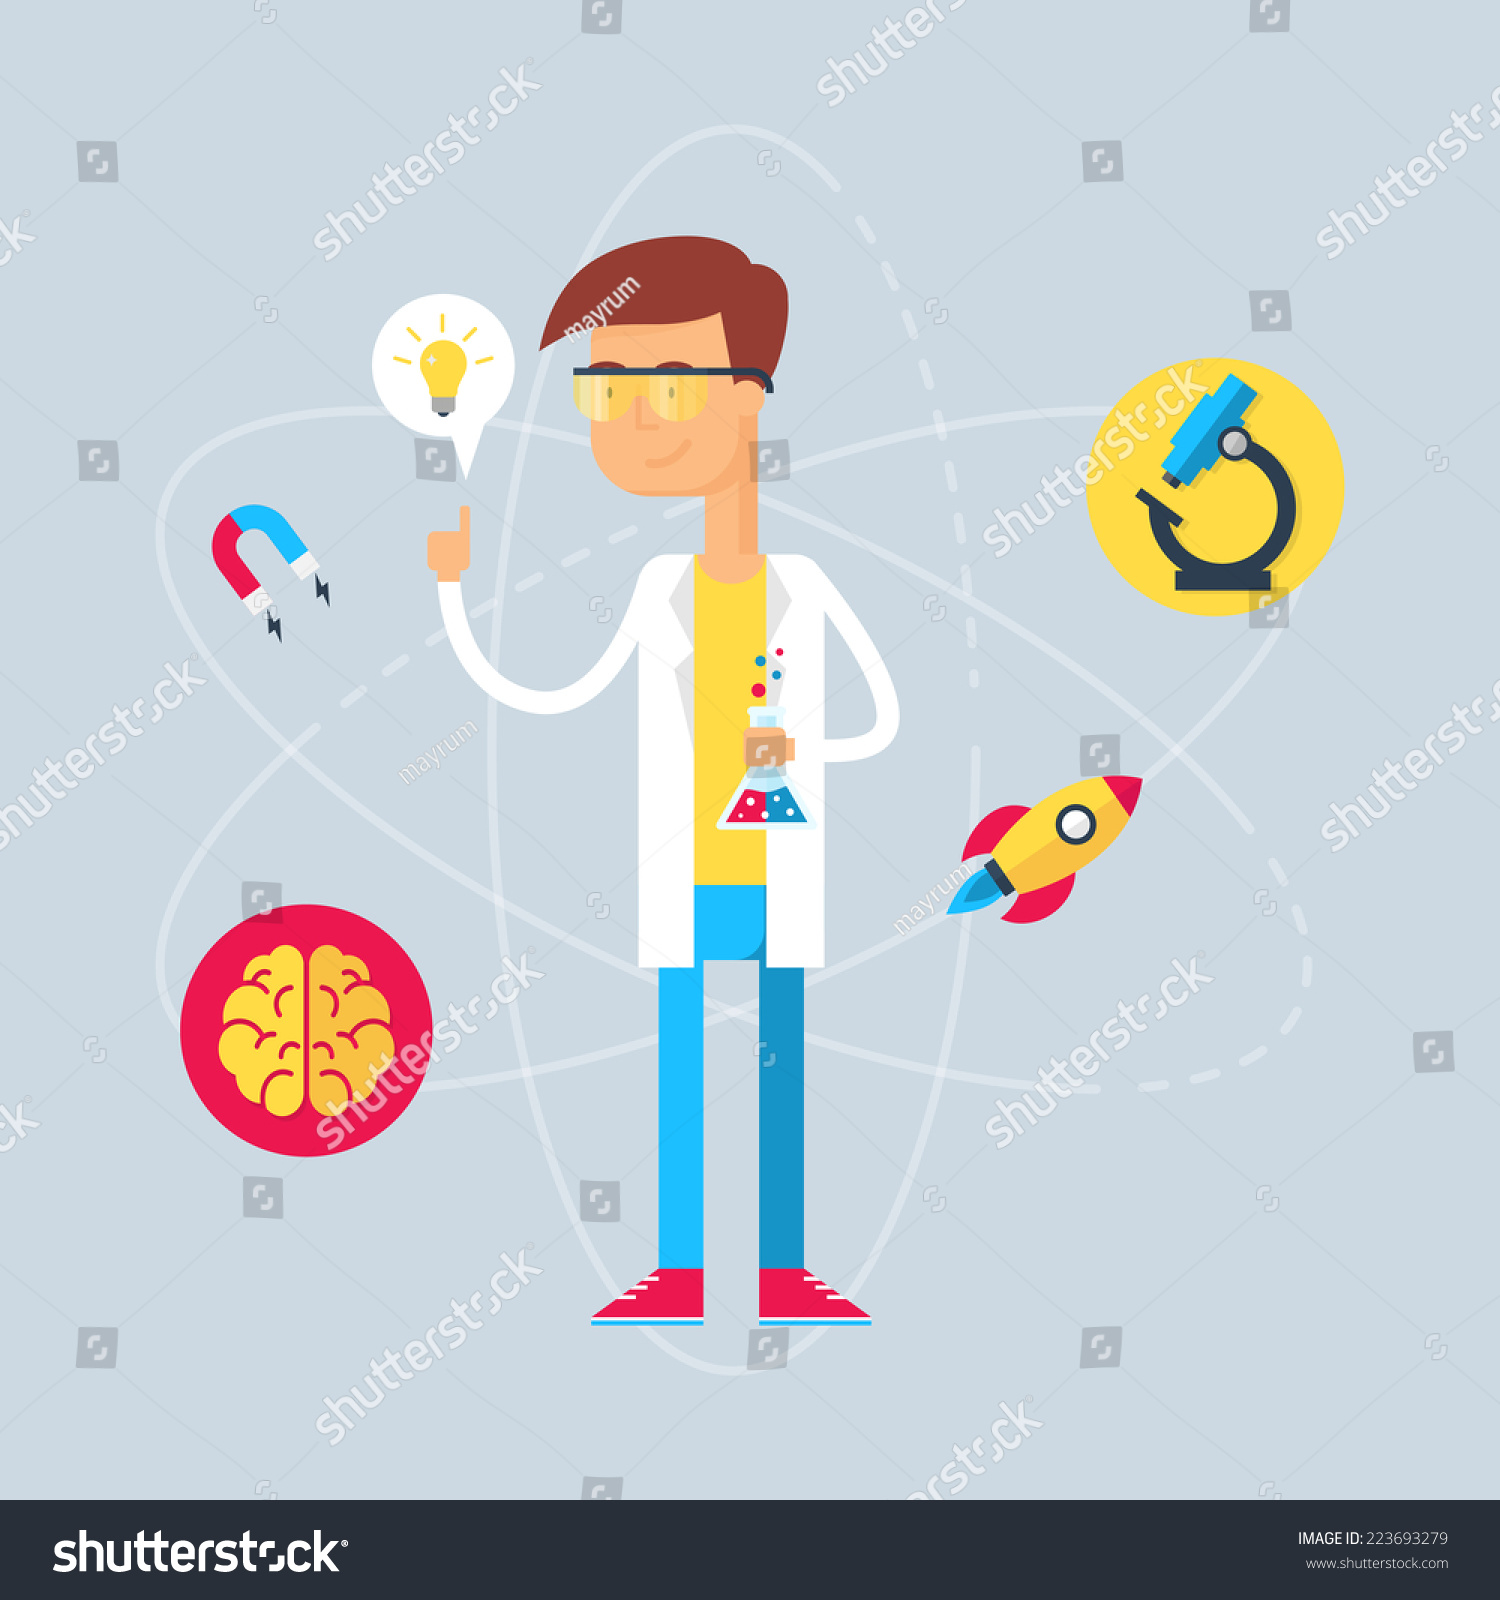 character scientist vector illustration flat style stock vector royalty free 223693279 https www shutterstock com image vector character scientist vector illustration flat style 223693279